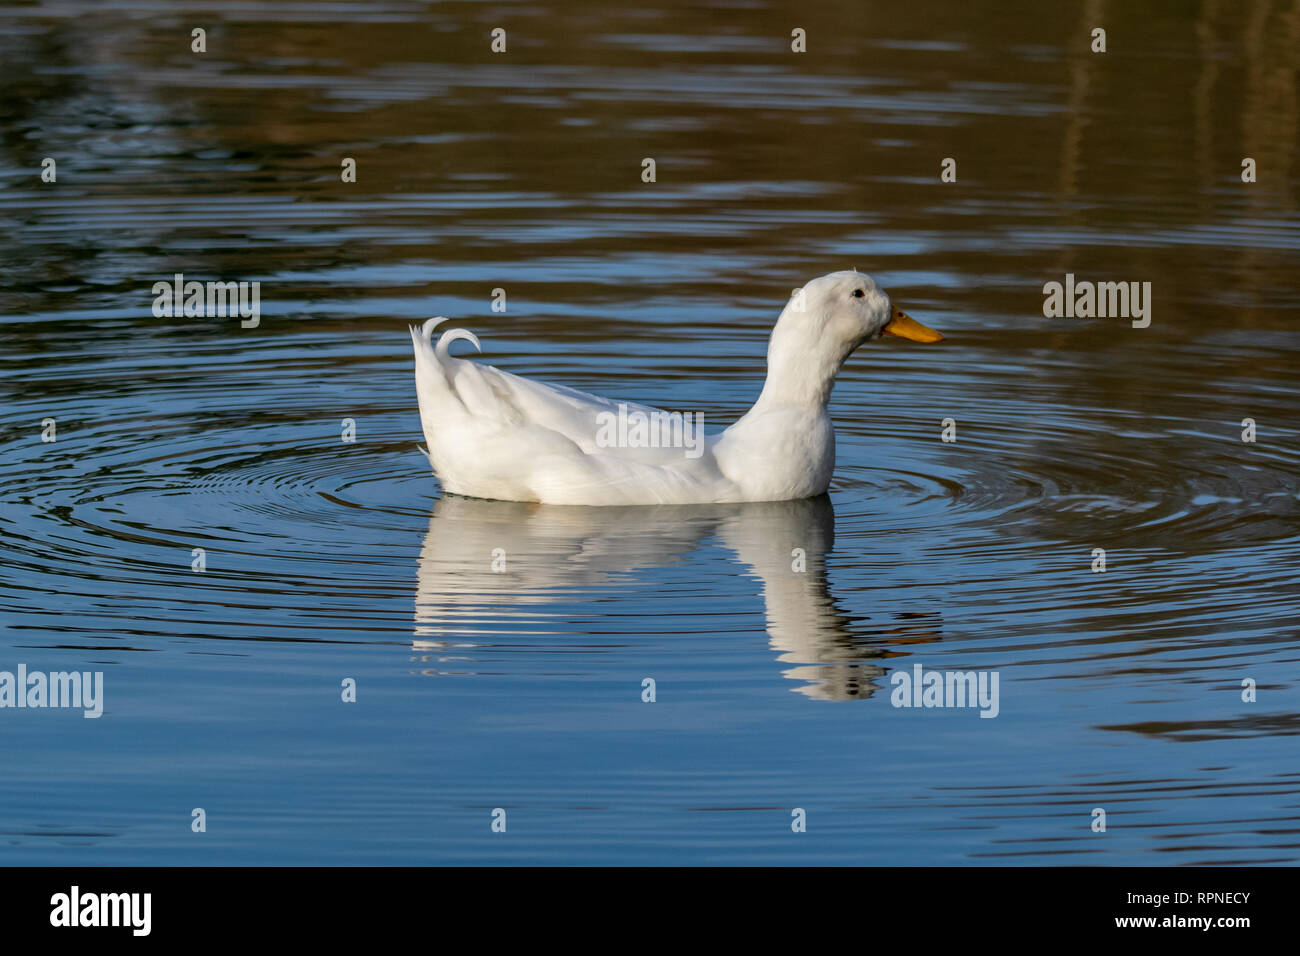 Male drake heavy white Pekin Duck (also known as Aylesbury or Long Island Duck) swimming on a still calm lake with reflection - Stock Image